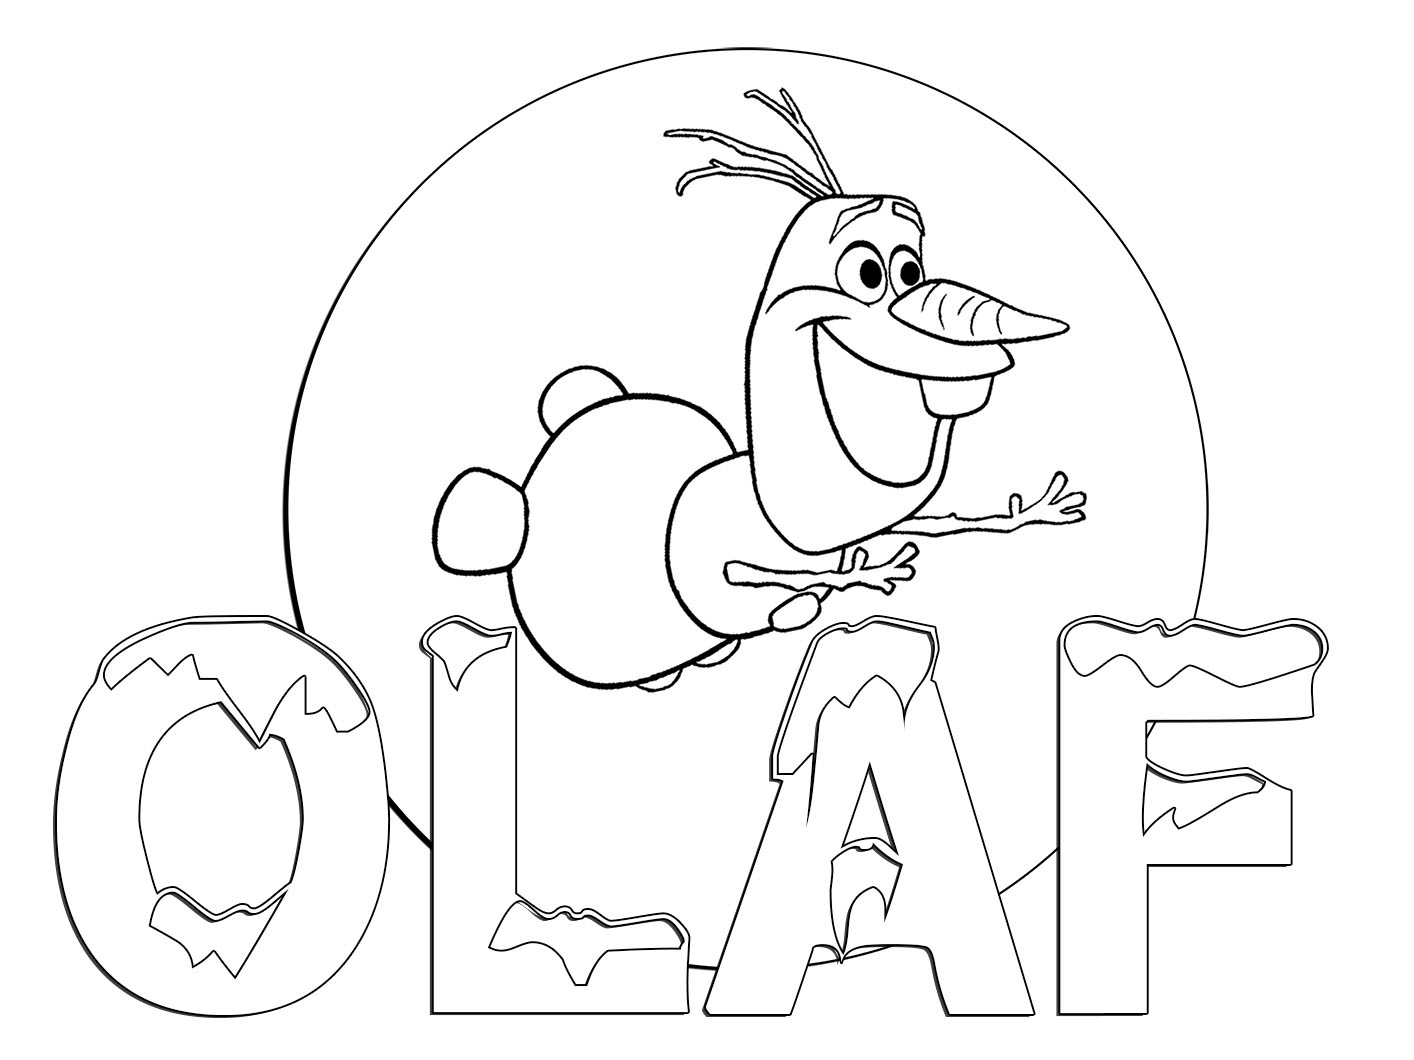 frozen movie coloring pages 15 beautiful disney frozen coloring pages free instant pages movie frozen coloring